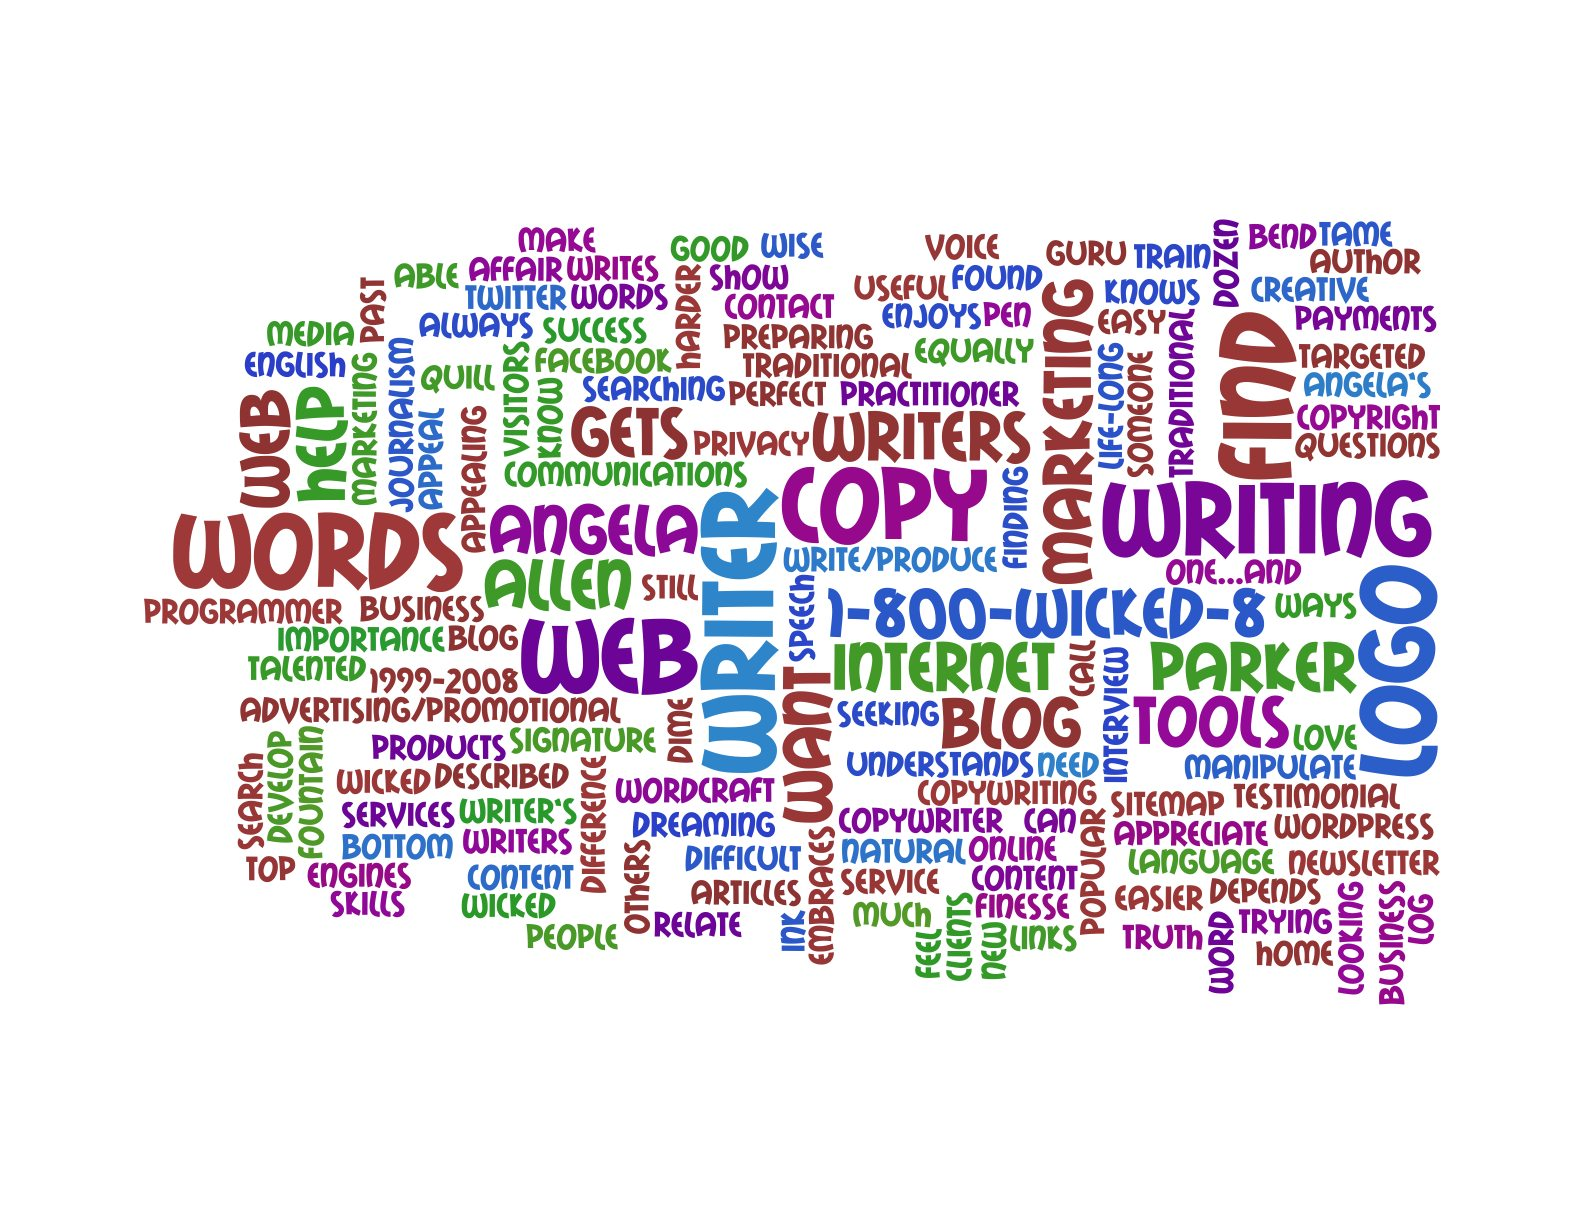 Wordle's Word Cloud for WickedWriter.com